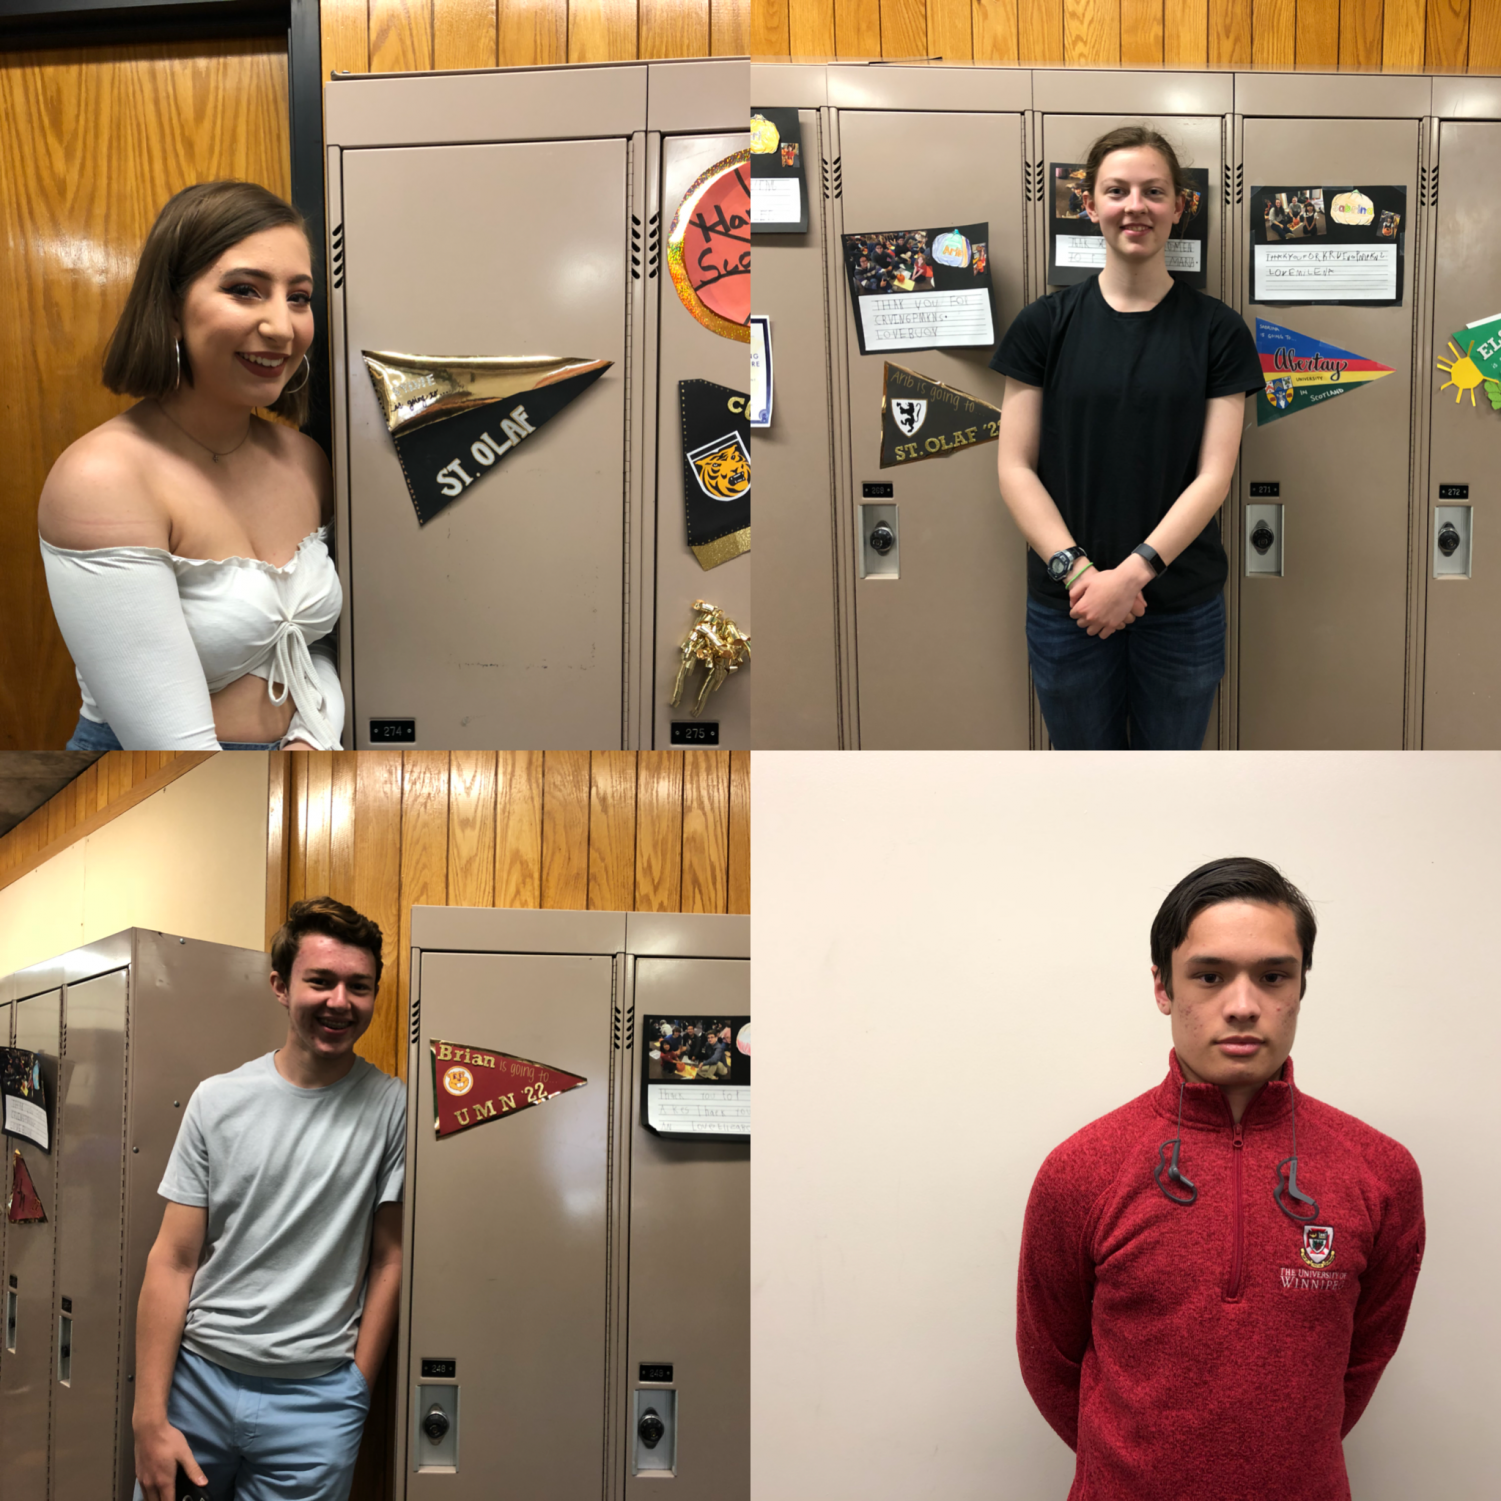 Seniors Sylvie Schifsky, Sabrina Rucker, Brian Orza and Erik Quillopa showcase the school they will be going to through flags on their lockers and school gear.